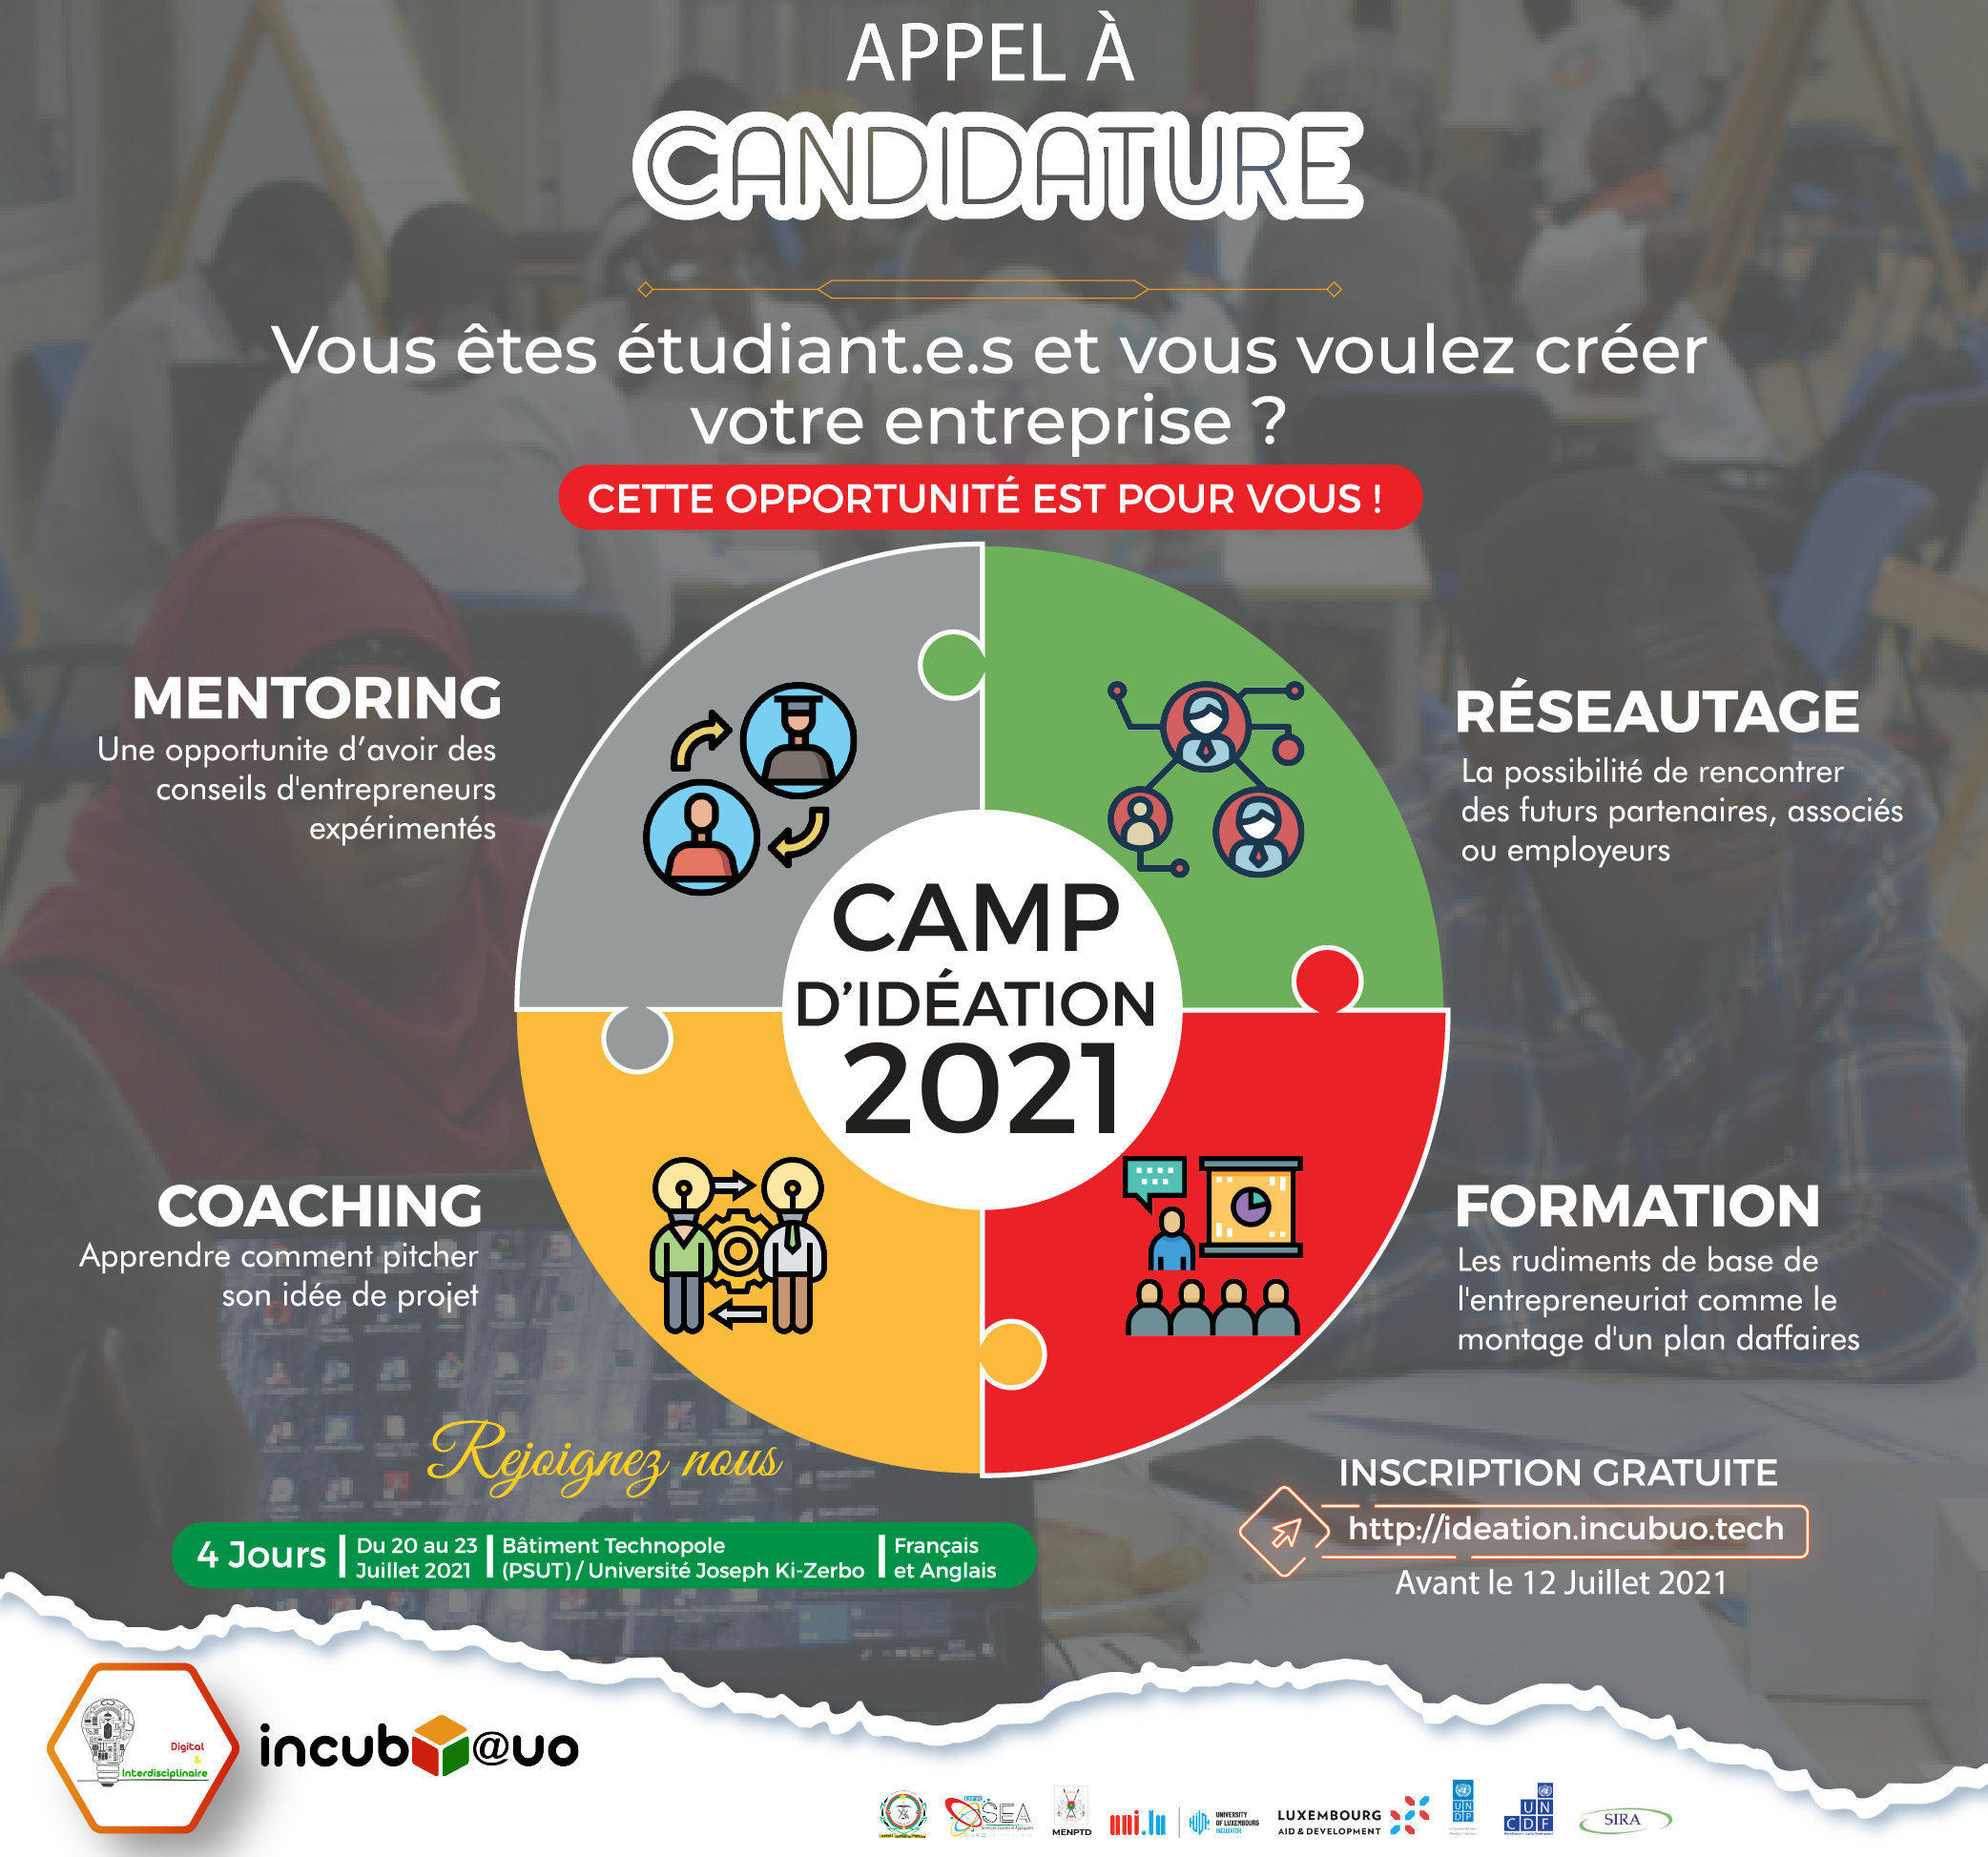 CAMP D'IDEATION 2021